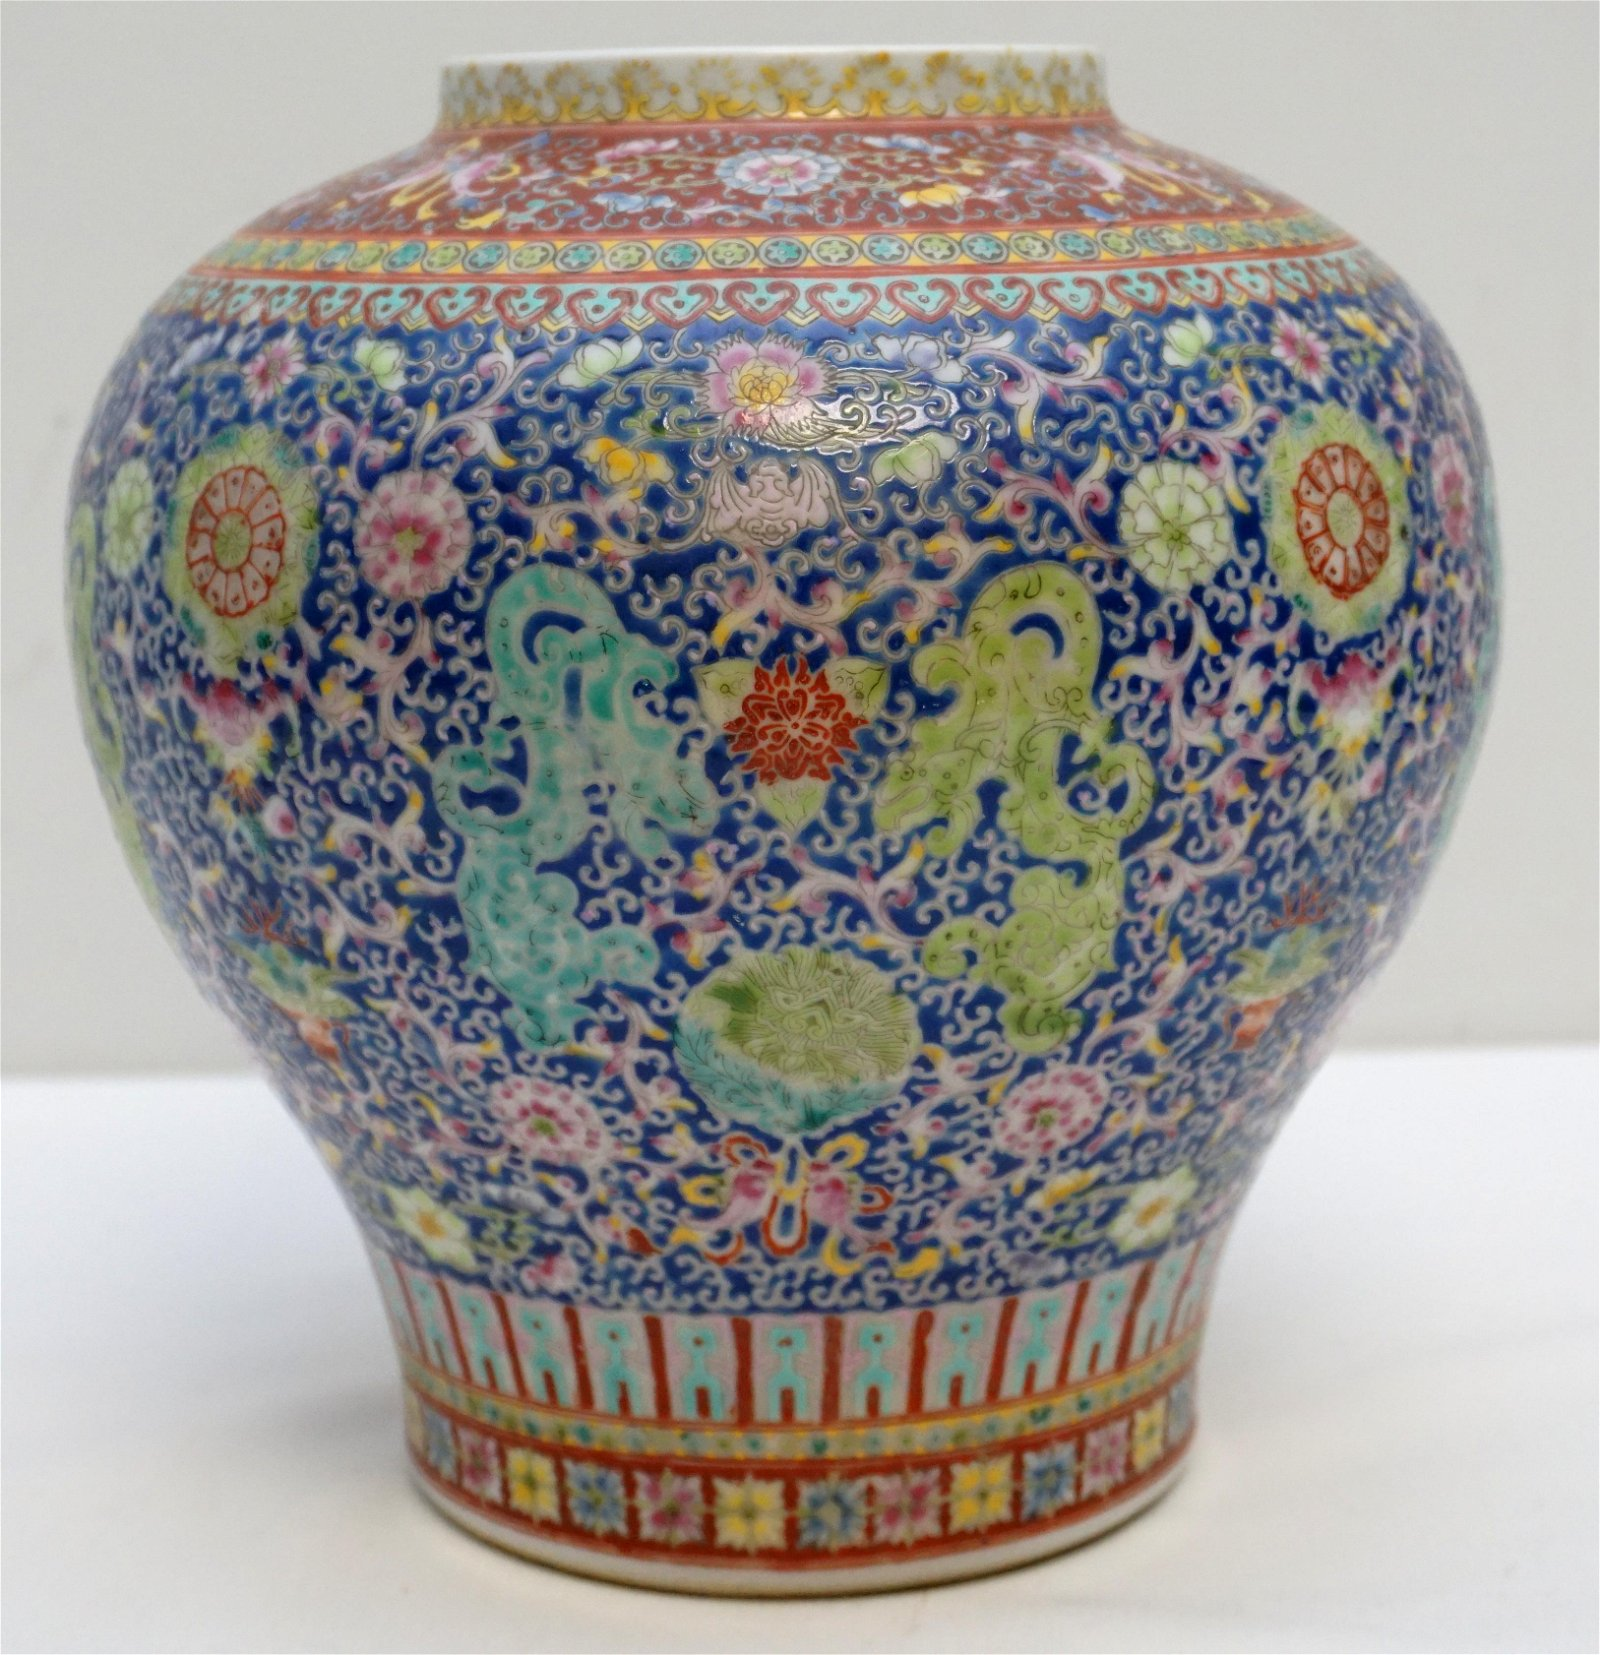 CHINESE QING DYNASTY DOUCAI VASE